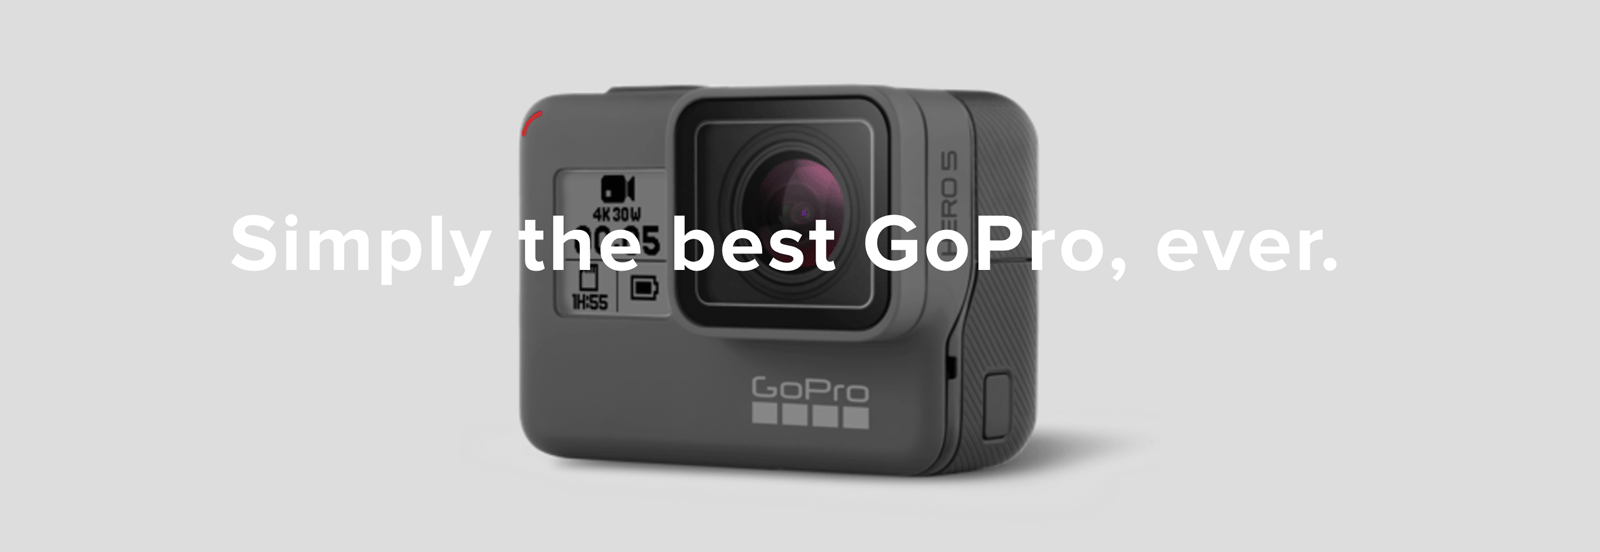 Win a GoPro Hero5 with Precise Investigation!